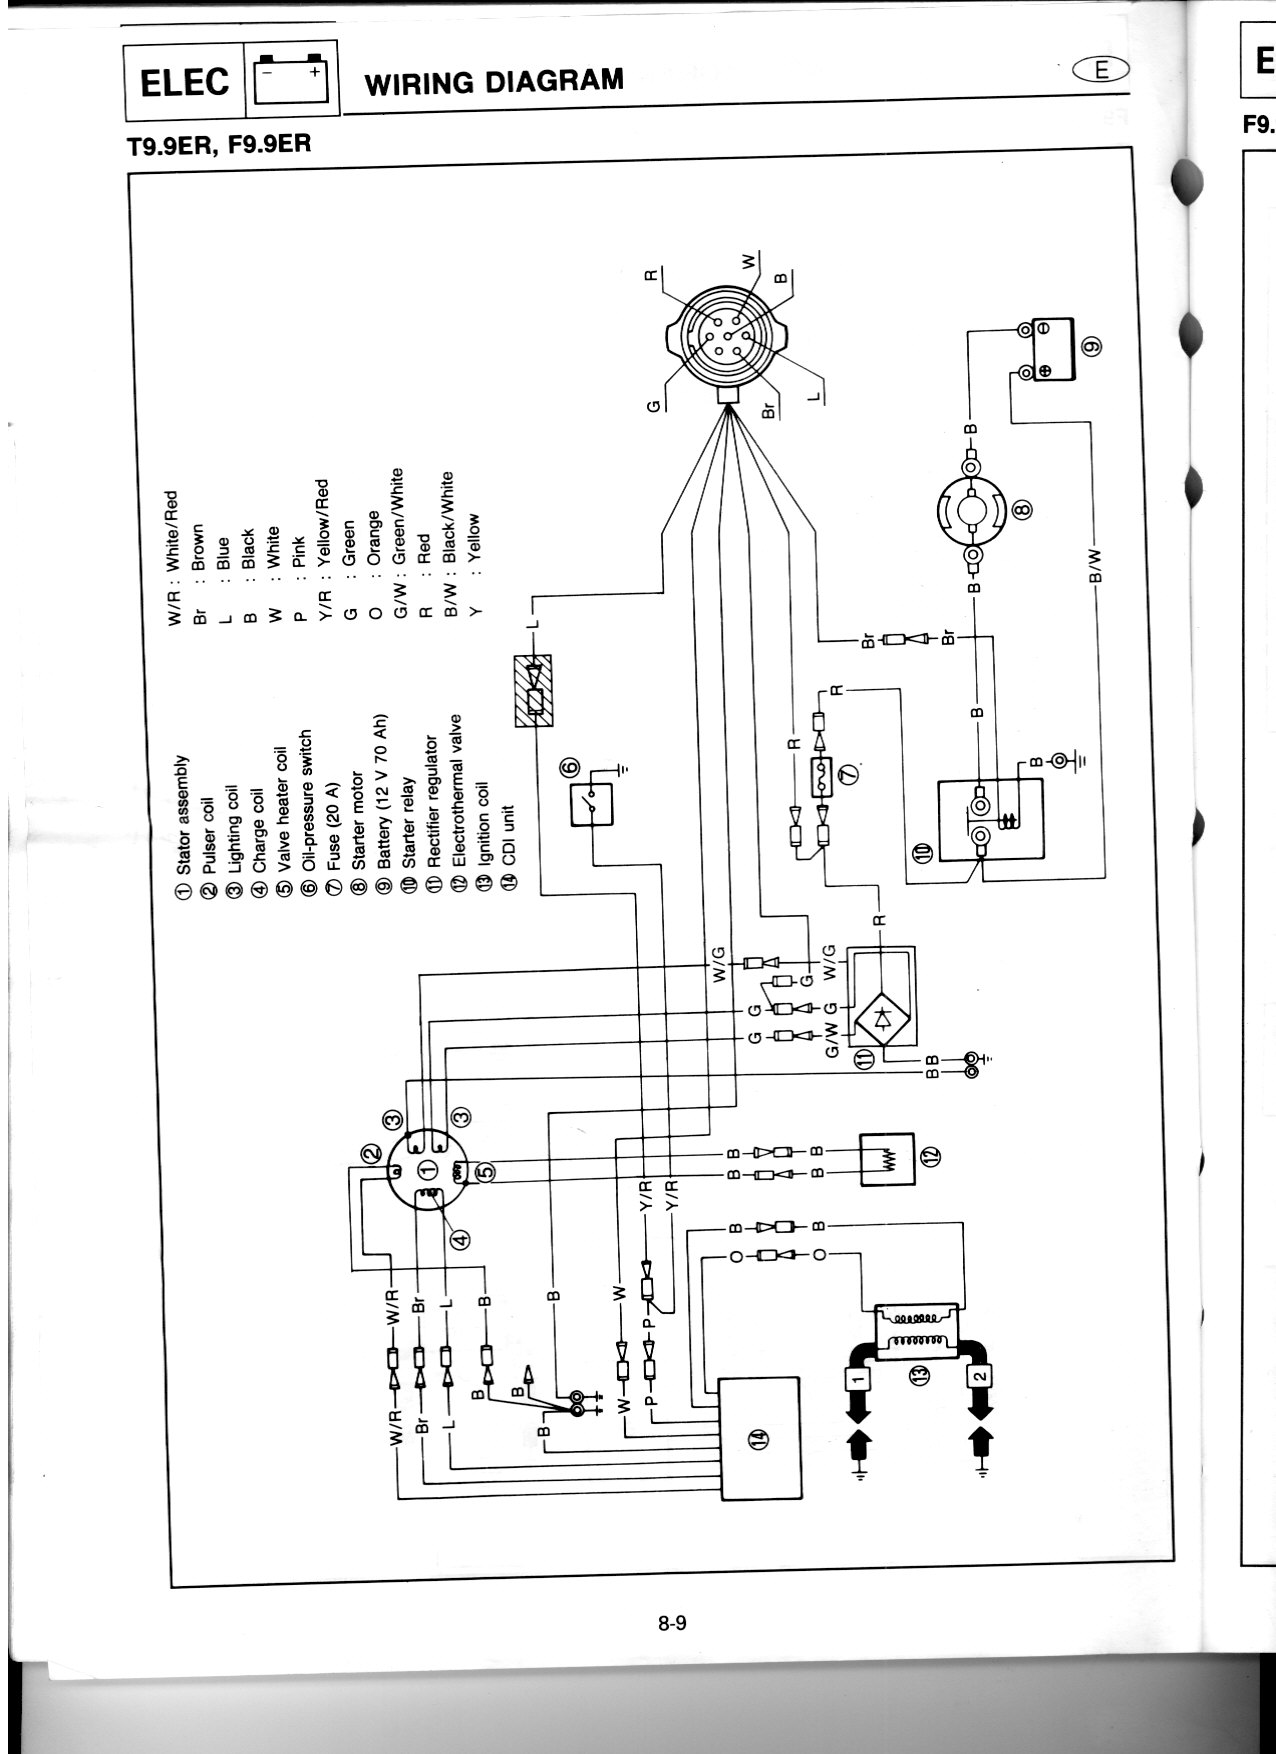 T9.9_Wiring_Diag yamaha rx 100 wiring diagram yamaha wiring diagrams for diy car Yamaha Outboard Wiring Diagram at eliteediting.co